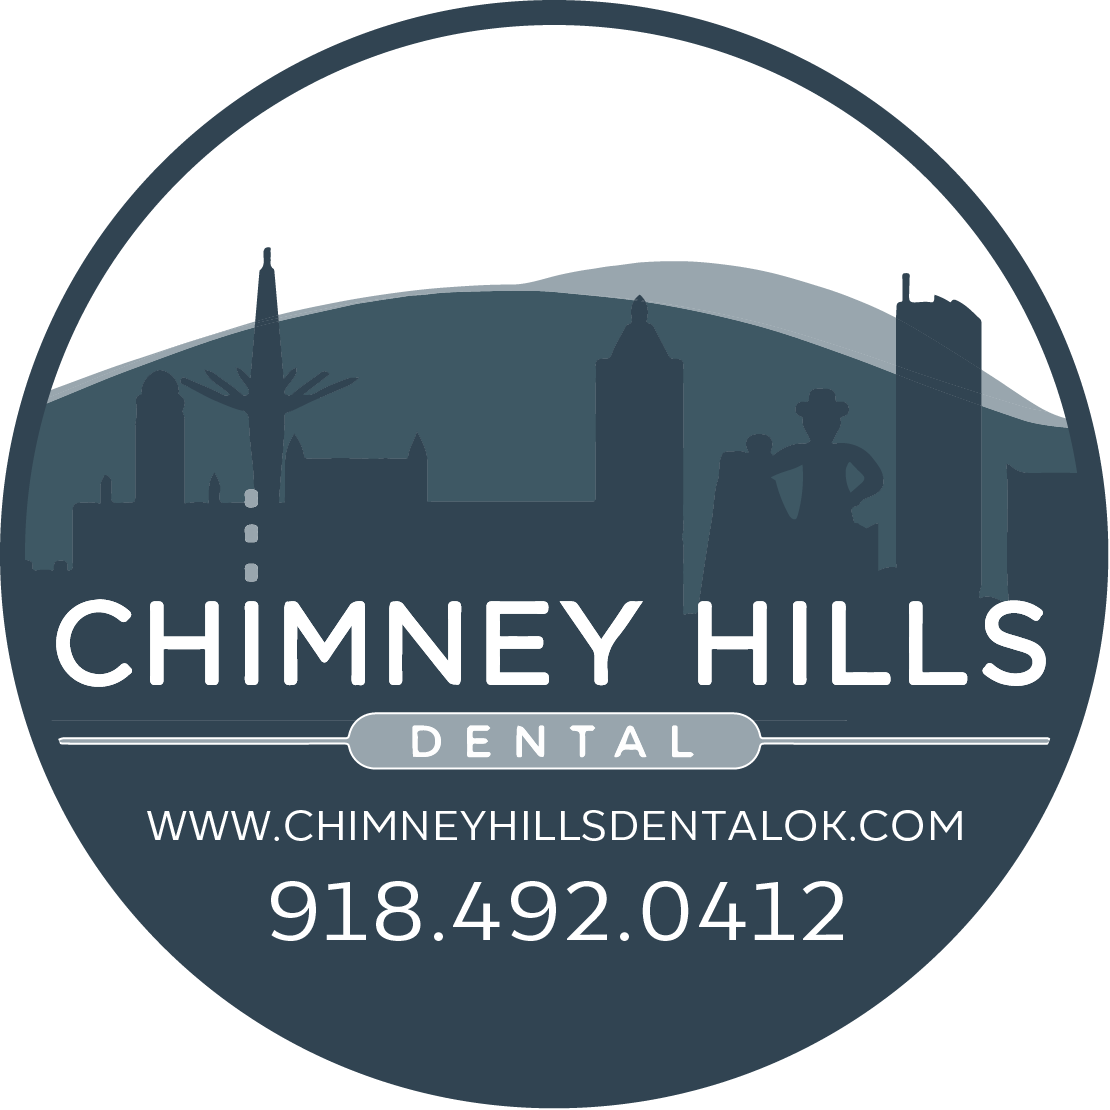 Chimney Hills Dental